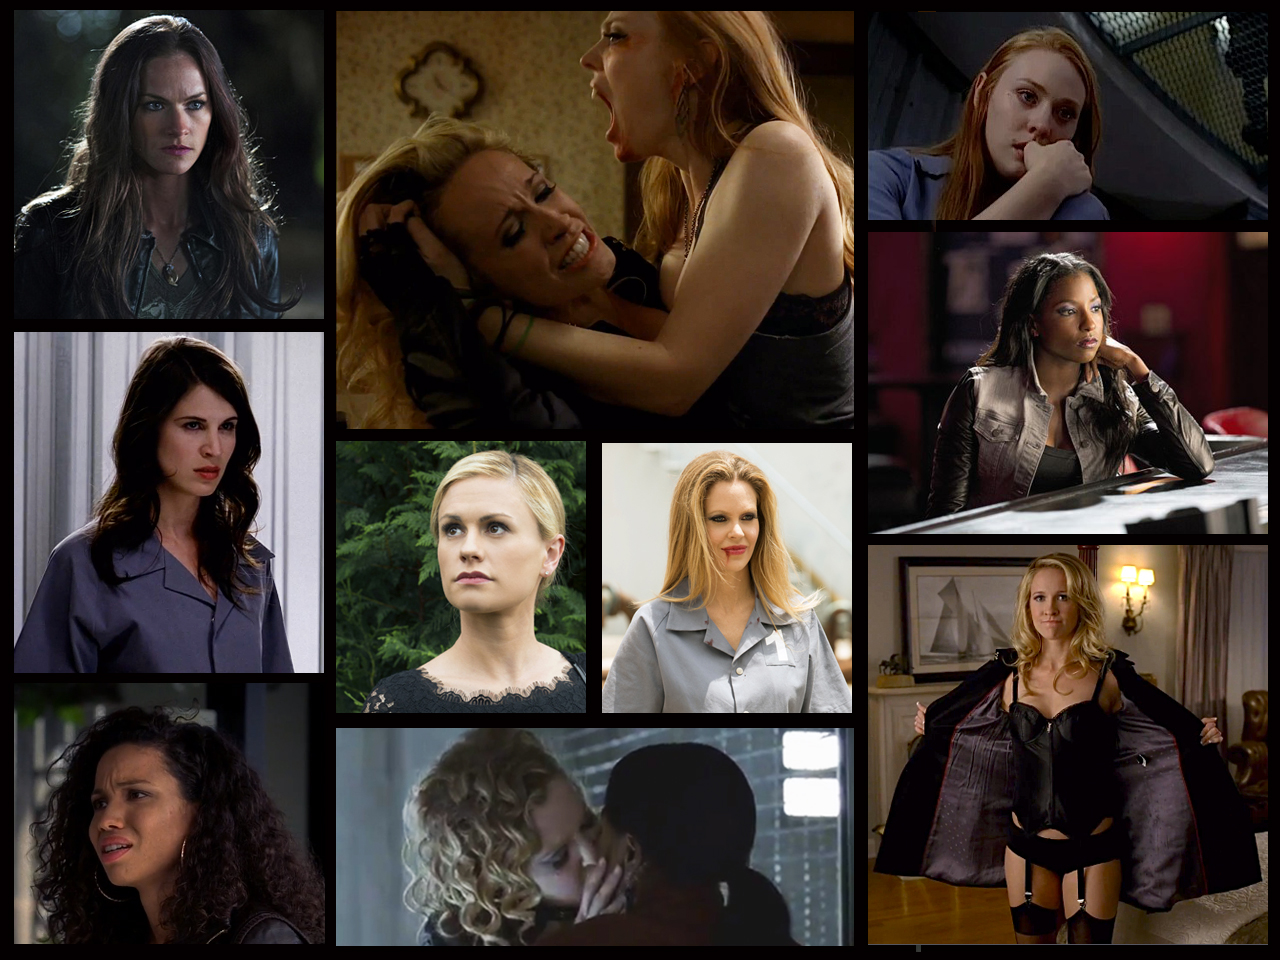 55 Ways To Leave Your Lesbian Vampire Lover (According To True Blood) |  Autostraddle